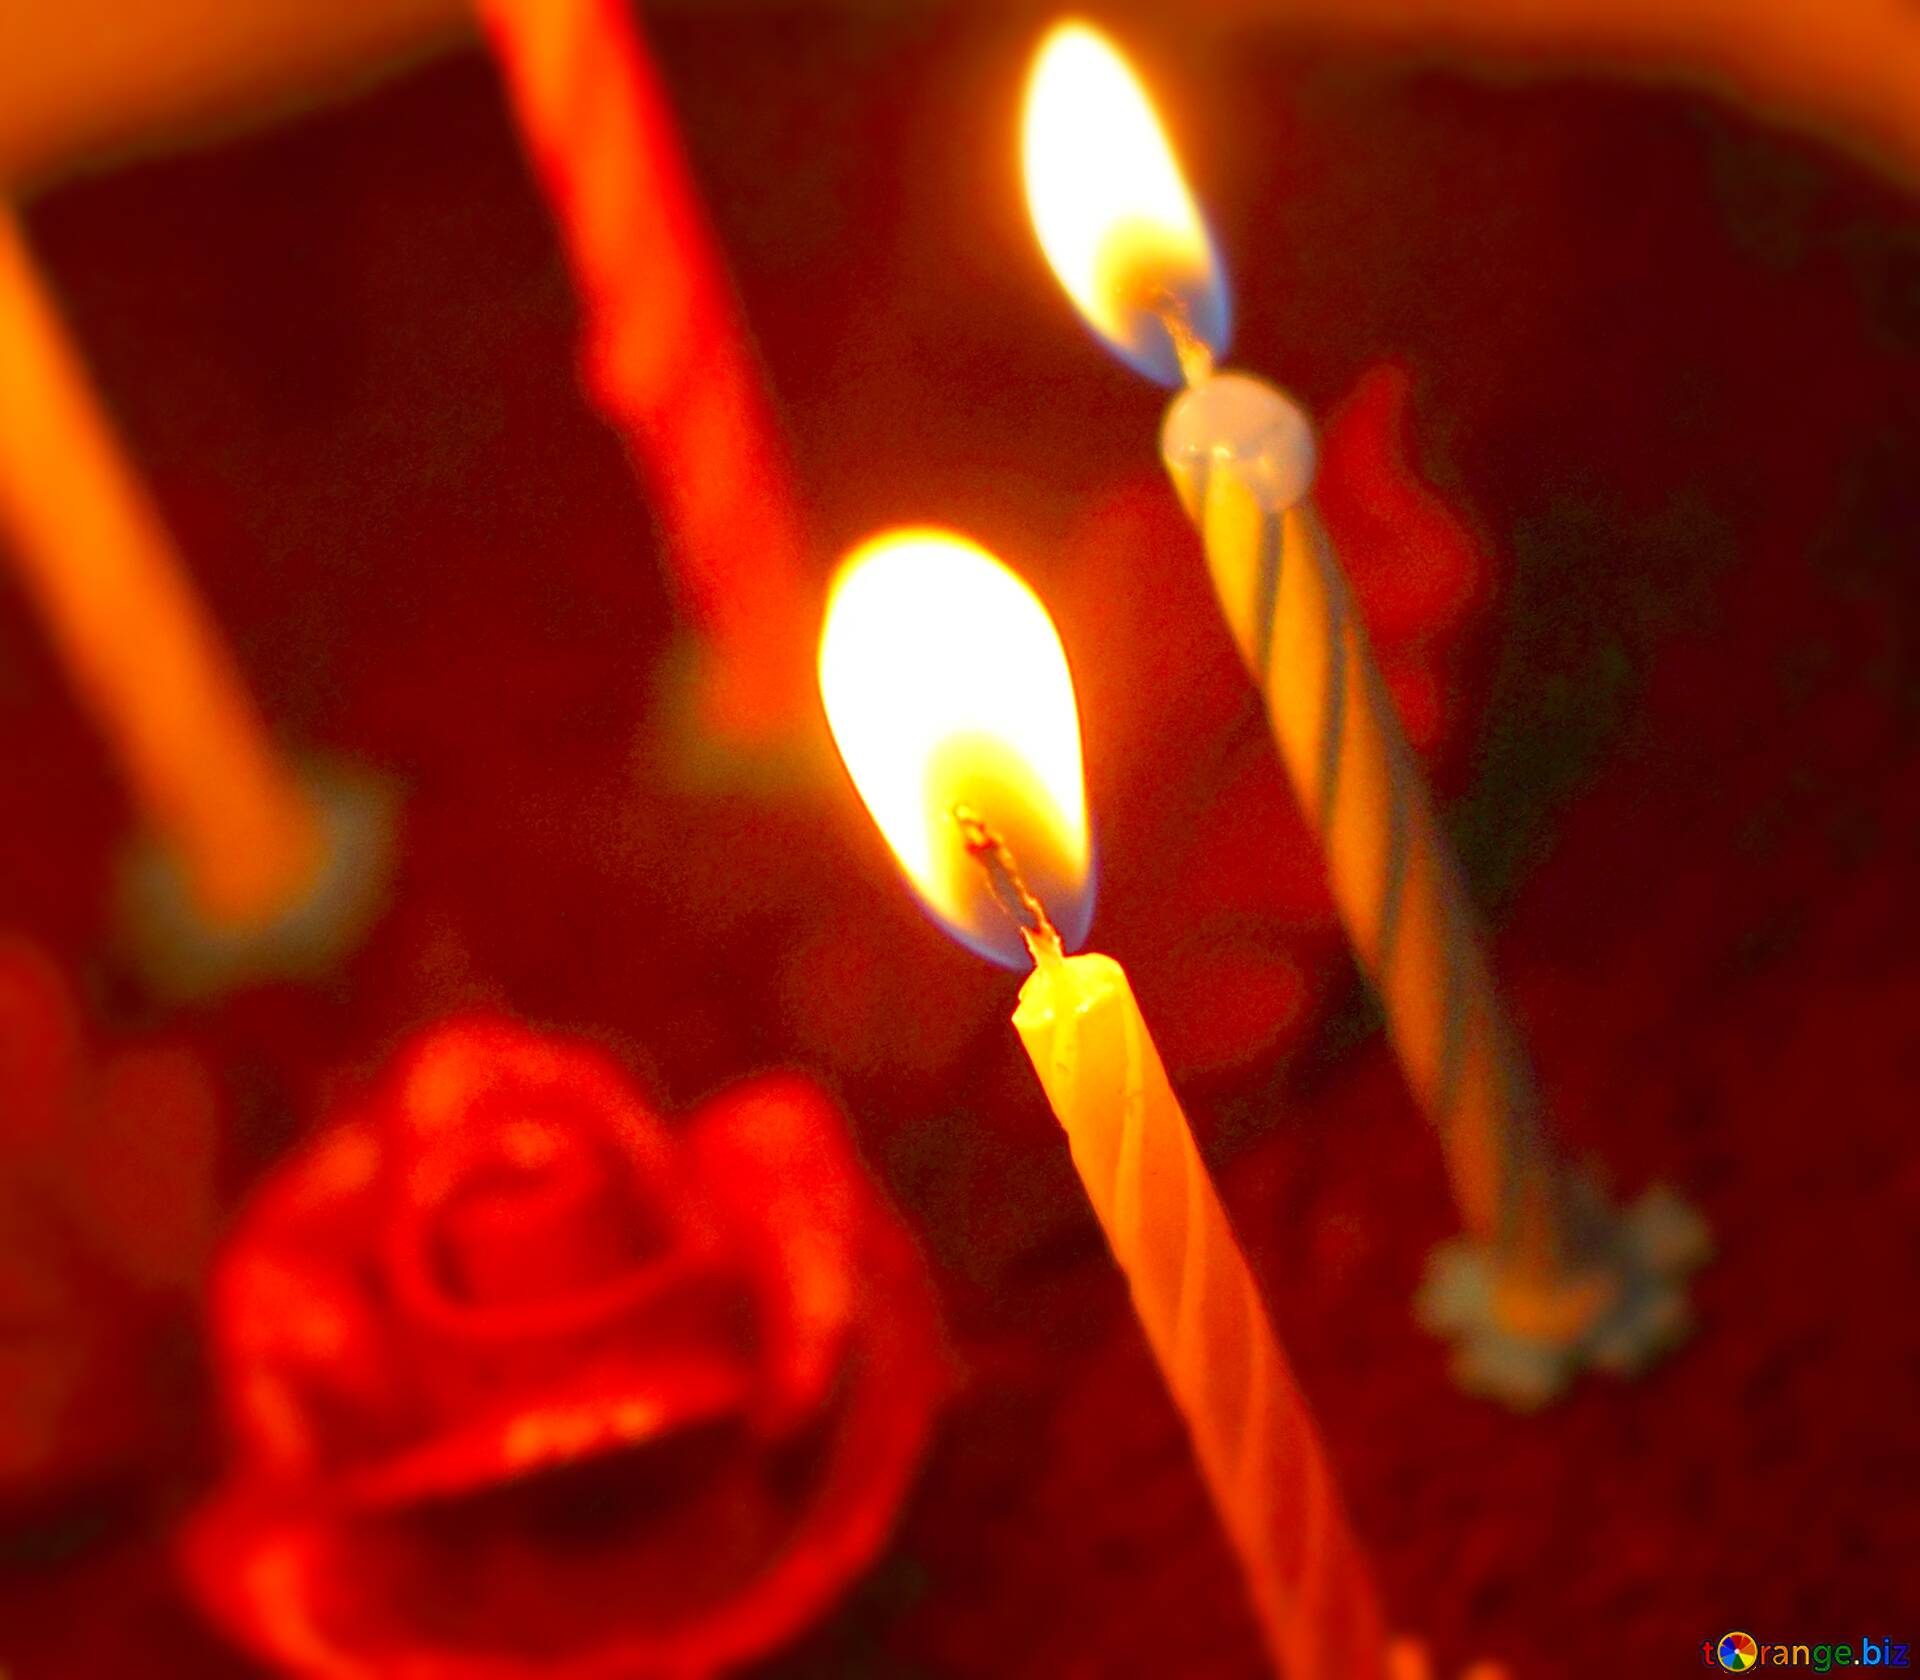 Download Free Picture Image For Profile Picture Candles On Birthday Cake On Cc By License Free Image Stock Torange Biz Fx 18879